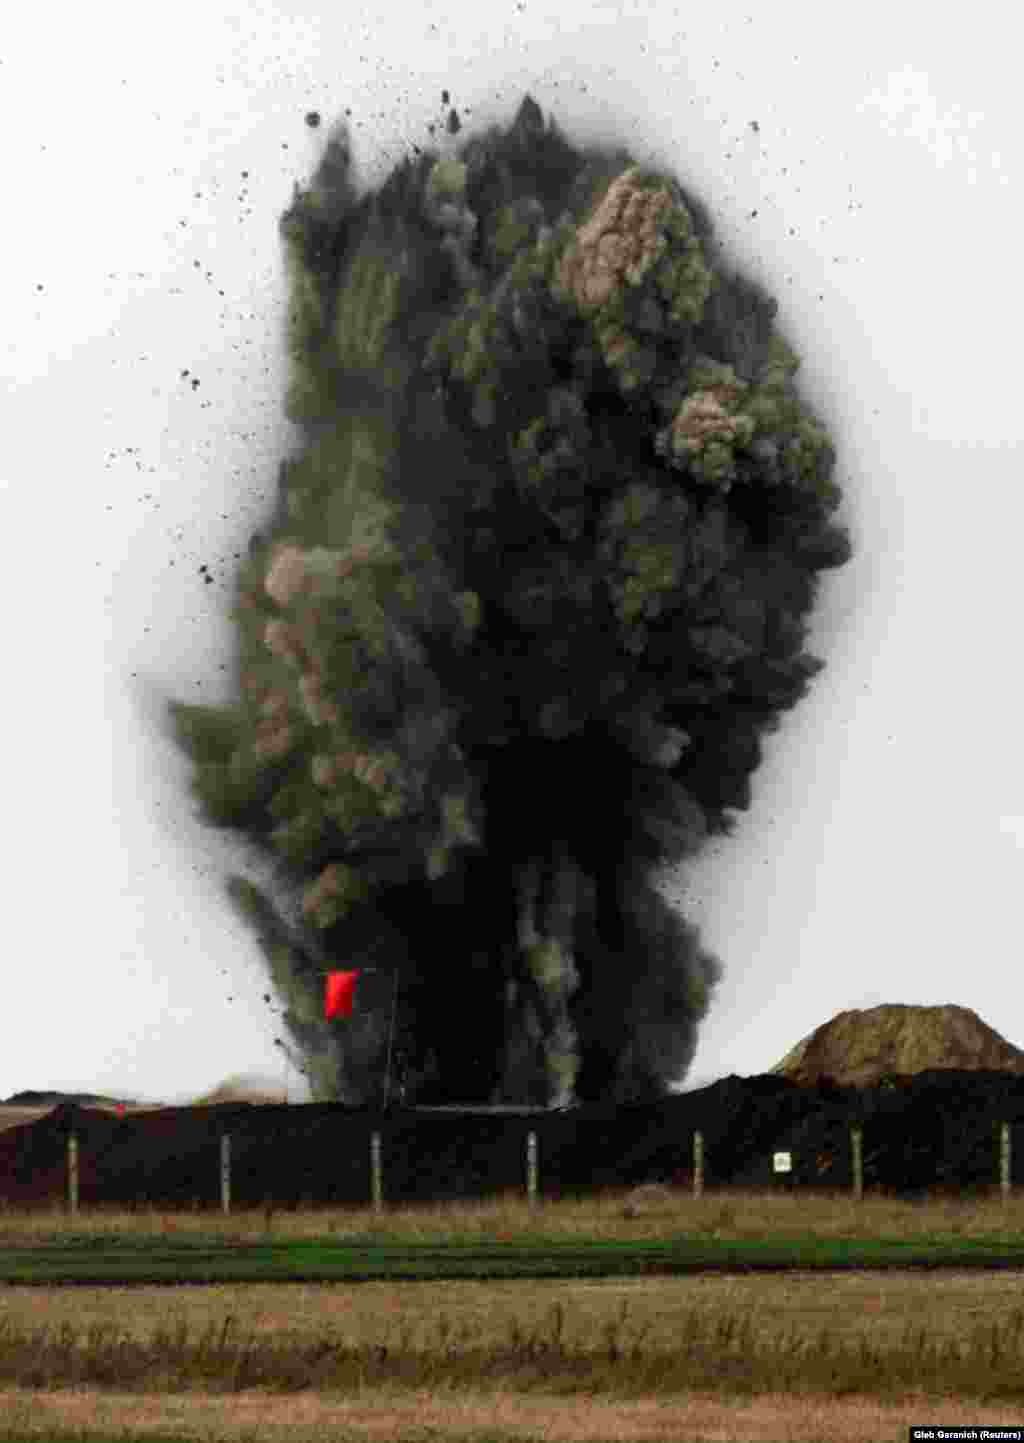 The last SS-24 missile silo being blown up near the Ukrainian town of Pervomaysk on October 30, 2001. In all, 46 SS-24 intercontinental ballistic missile silos were destroyed.